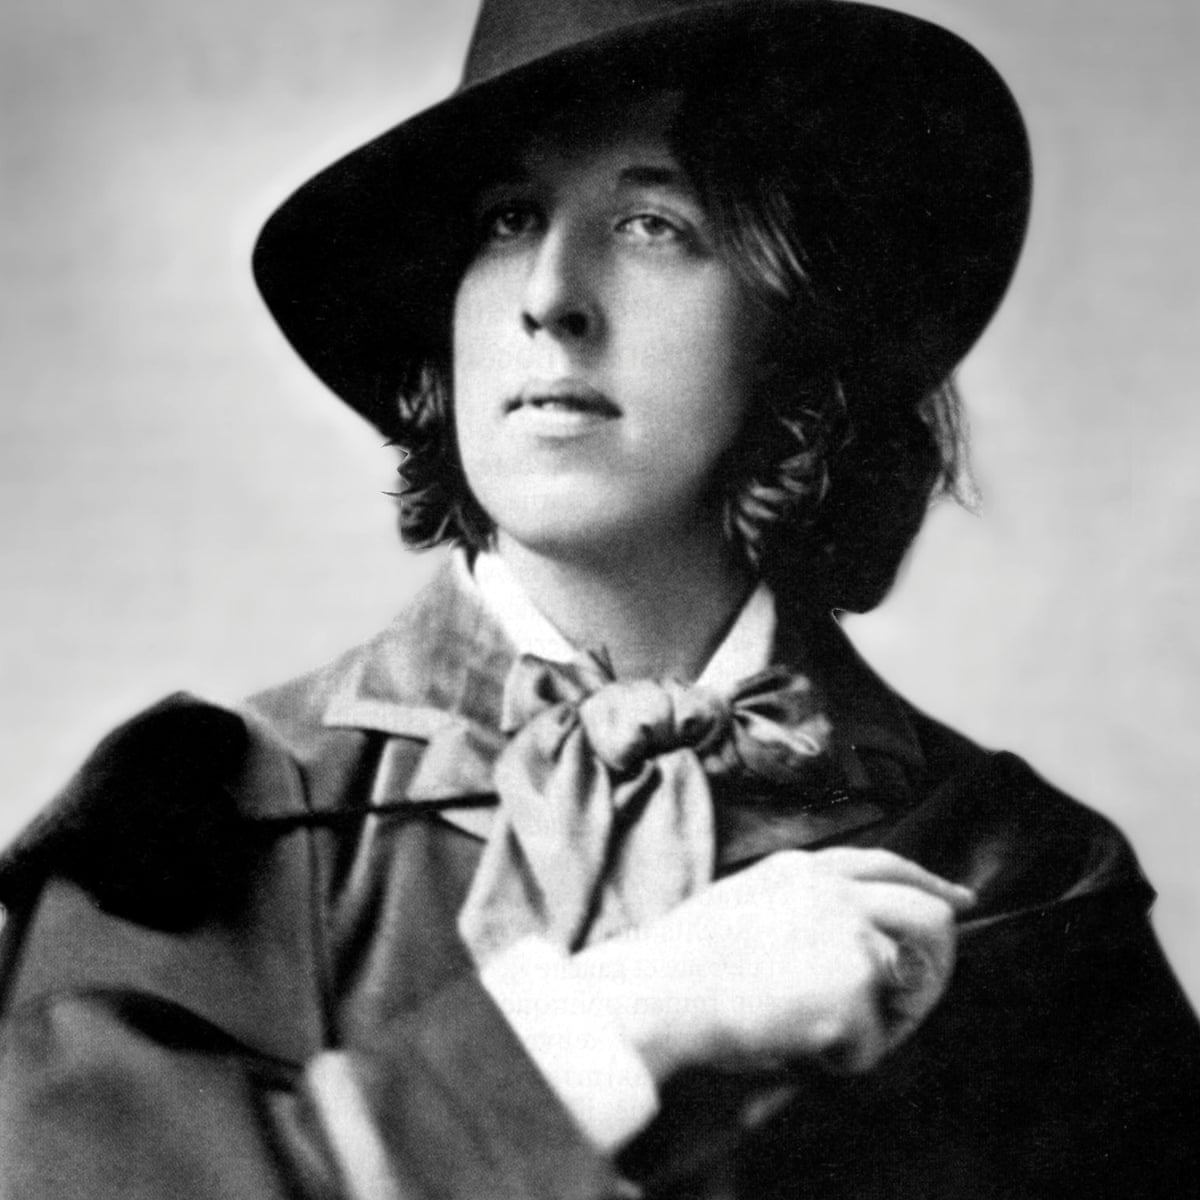 Oscar Wilde: The Unrepentant Years and Oscar's Ghost review – Wilde after prison | Books | The Guardian